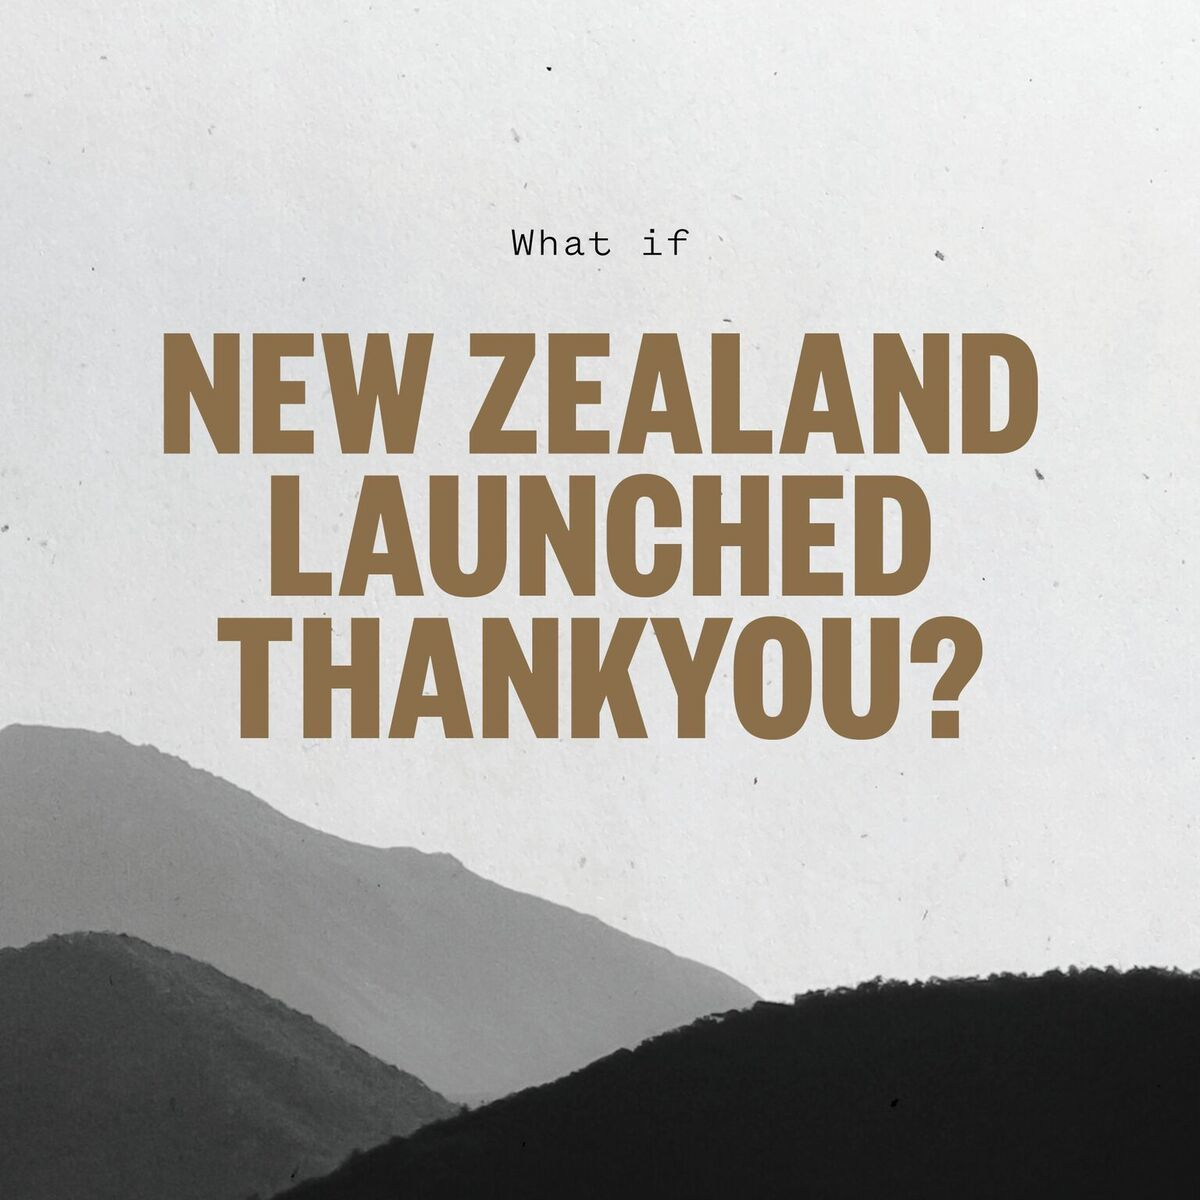 What If New Zealand Launched Thankyou Thankyou